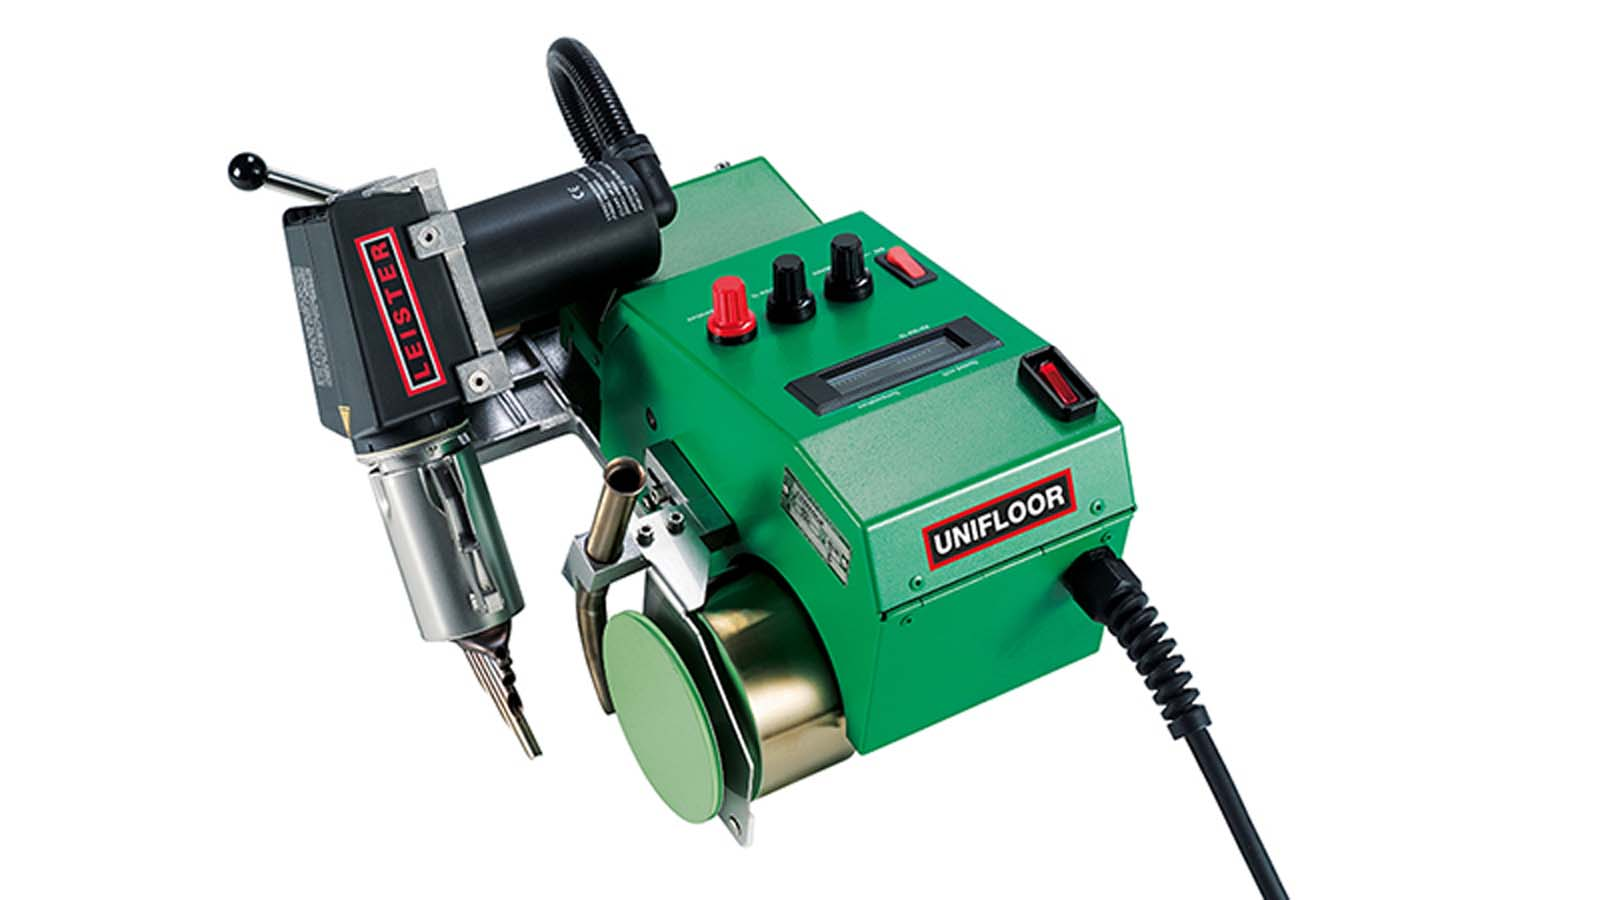 UNIFLOOR E Hot-air welder